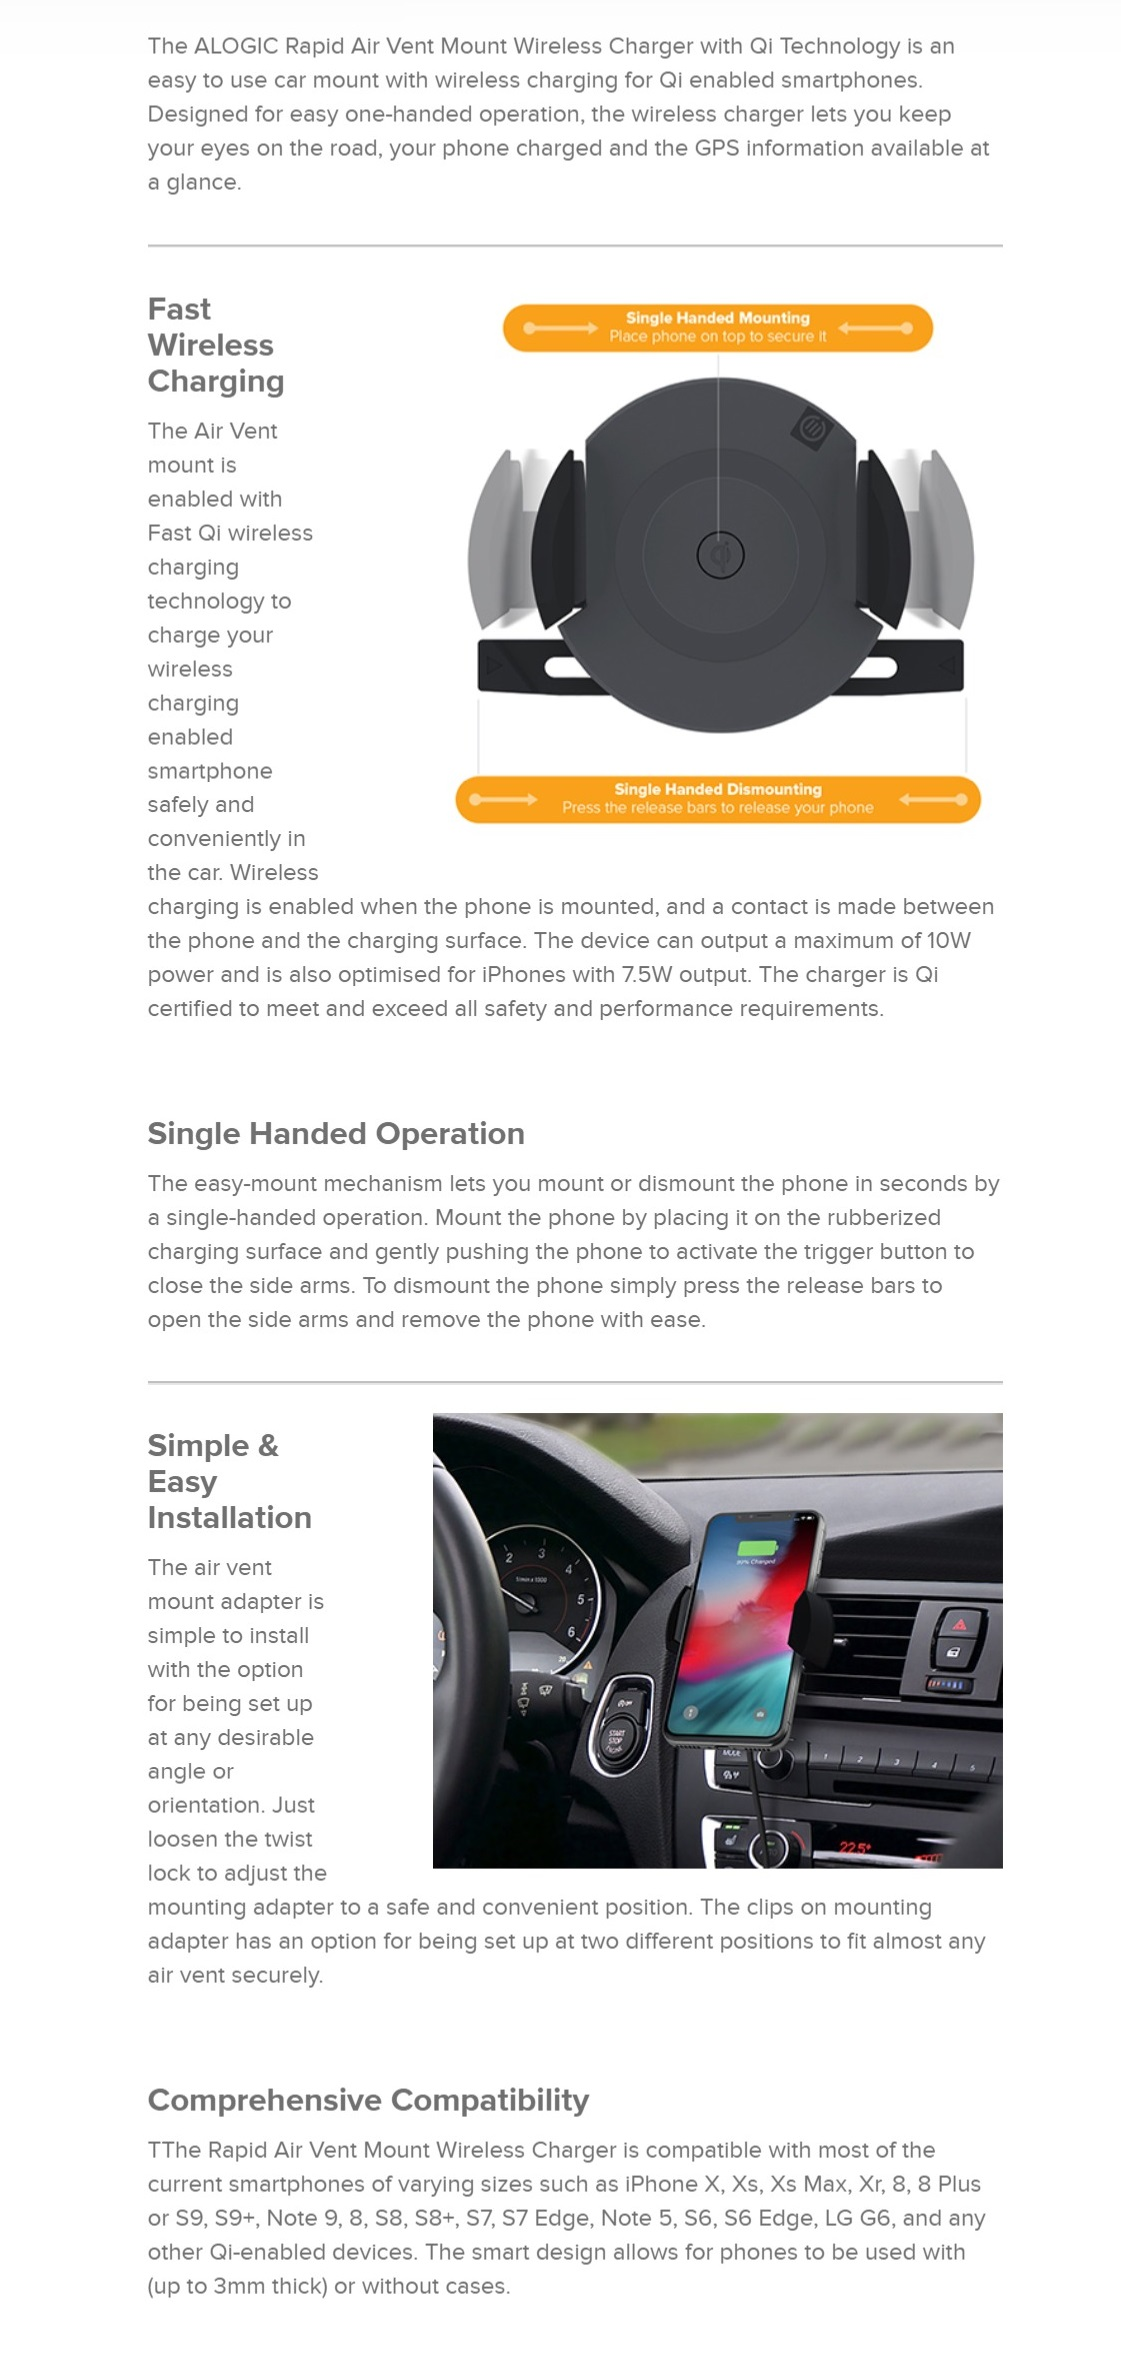 Alogic Rapid Air Vent Mount Wireless Charger Car Charger with Qi Technology